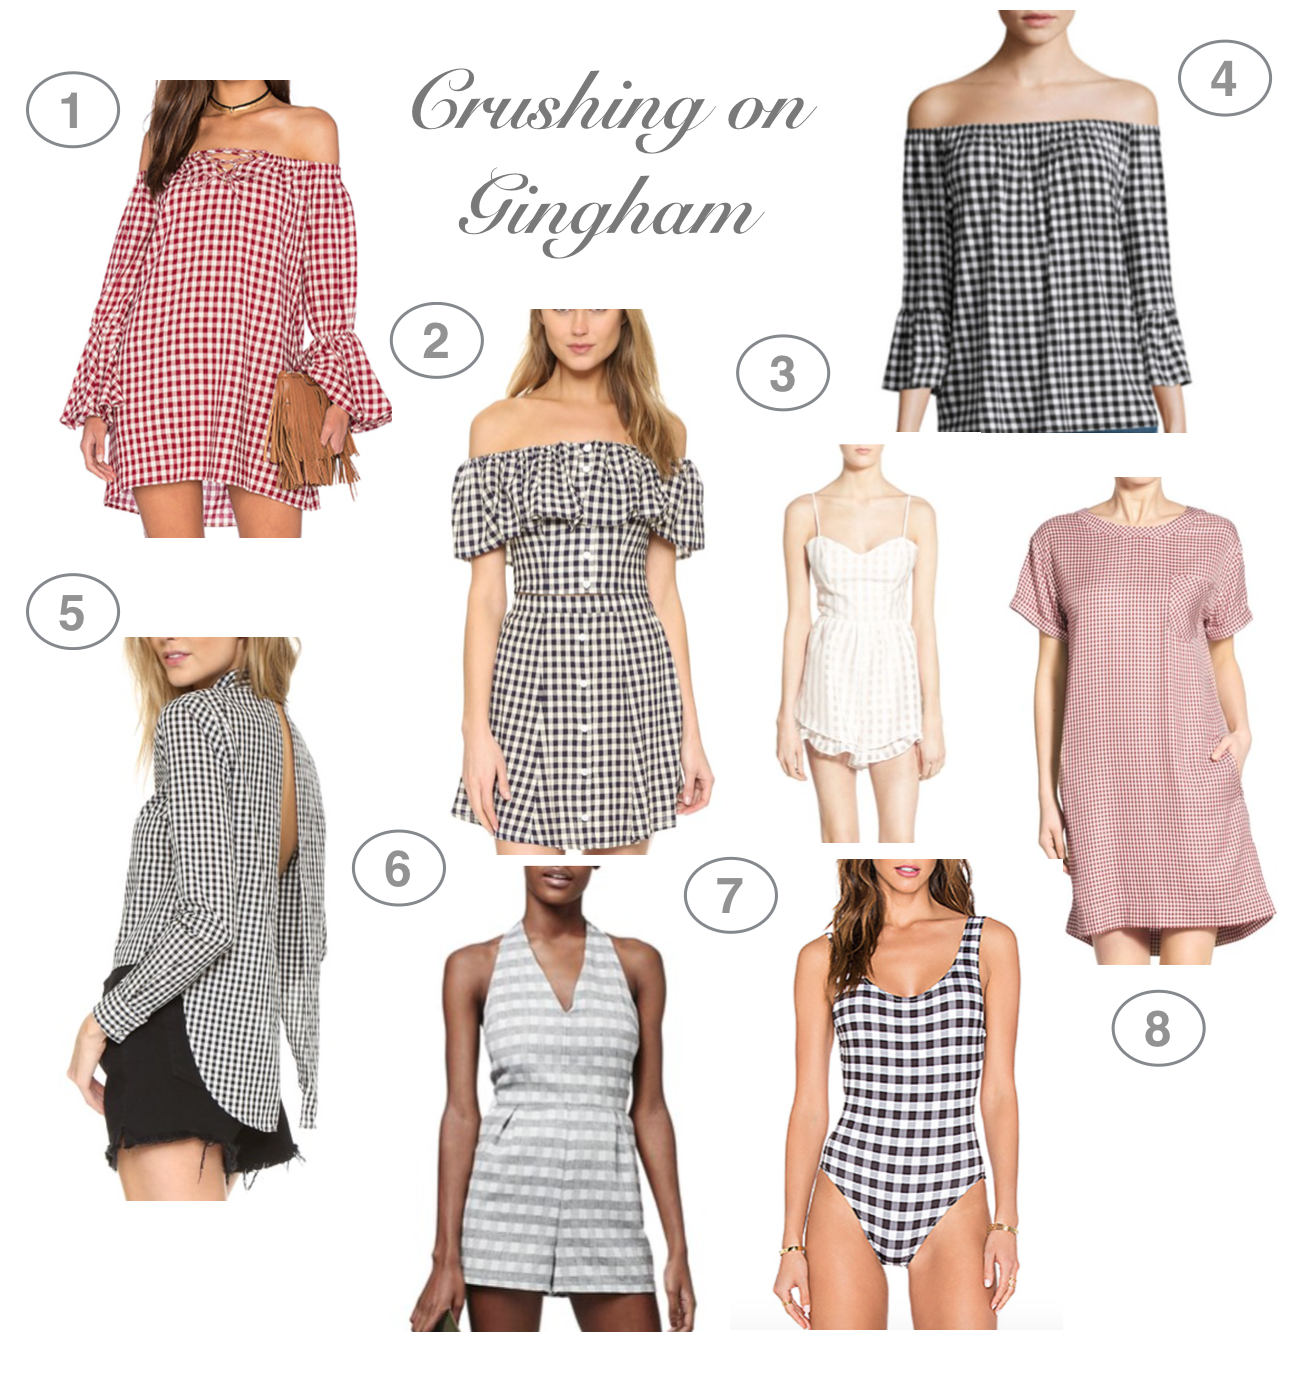 Dress Up Buttercup // A Houston-based fashion and inspiration blog developed to daily inspire your own personal style by Dede Raad | Crushing on Gingham